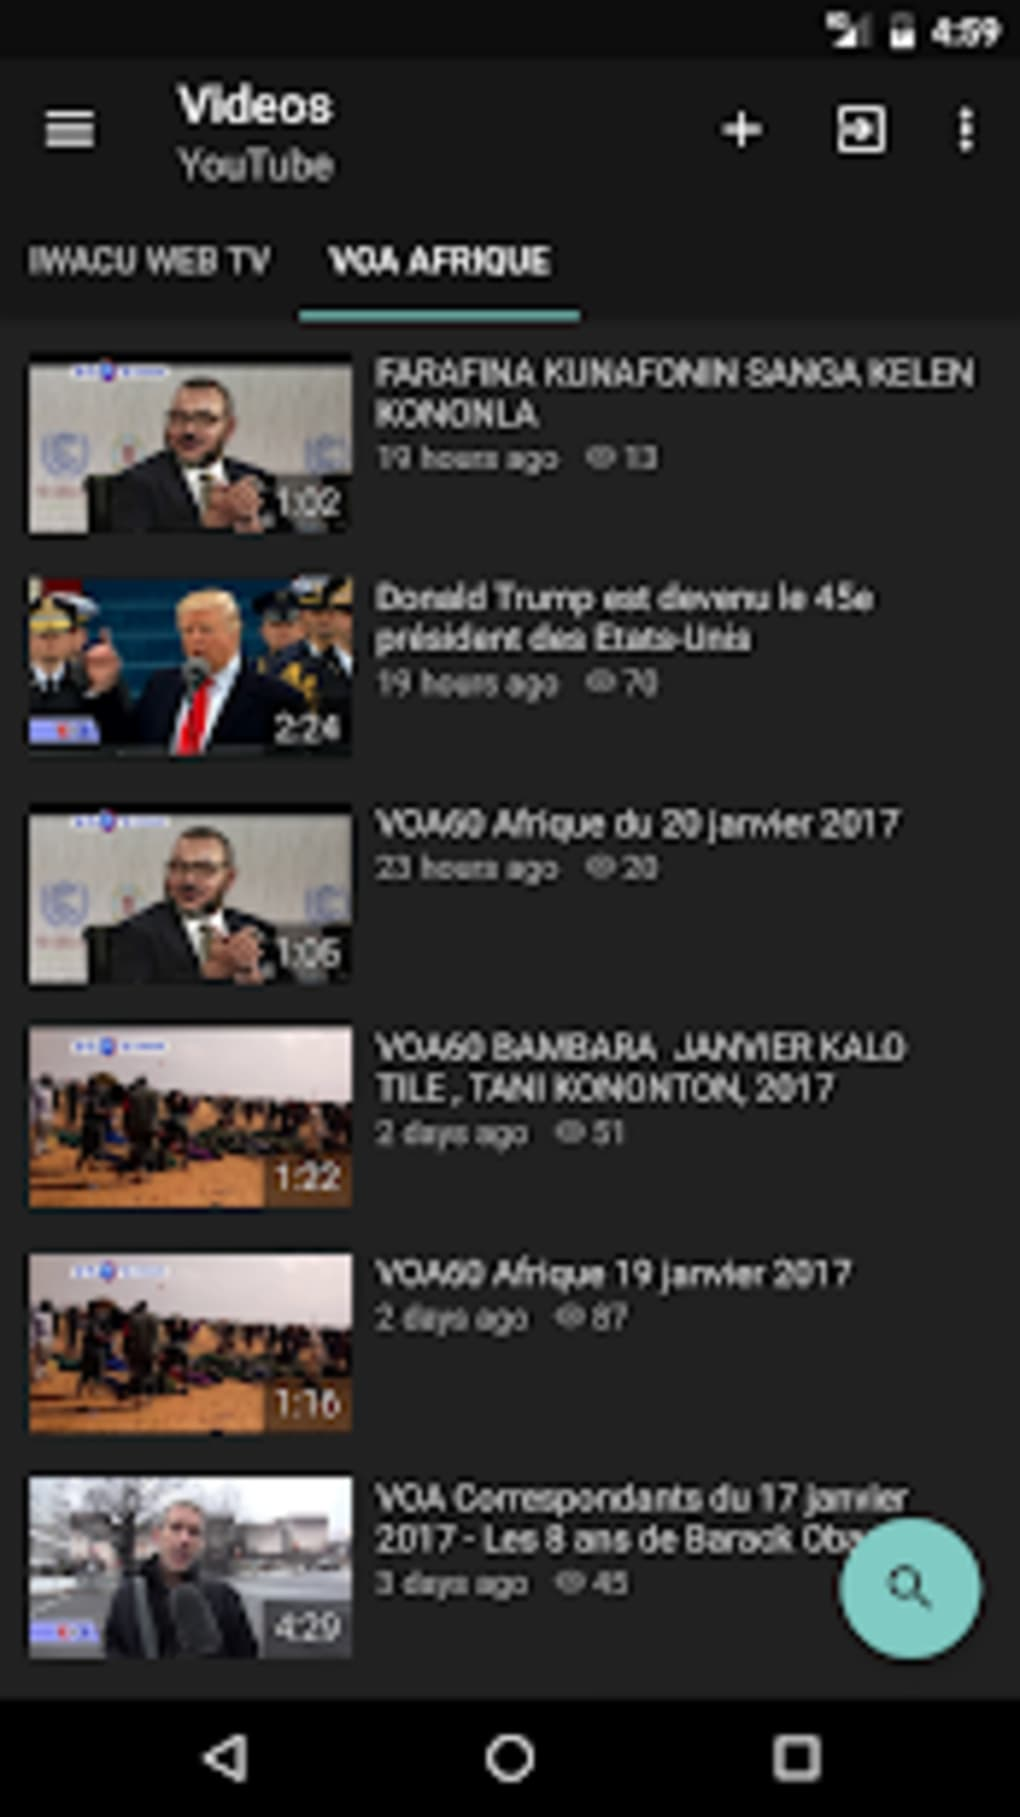 Burundi News Kurasa Apk For Android